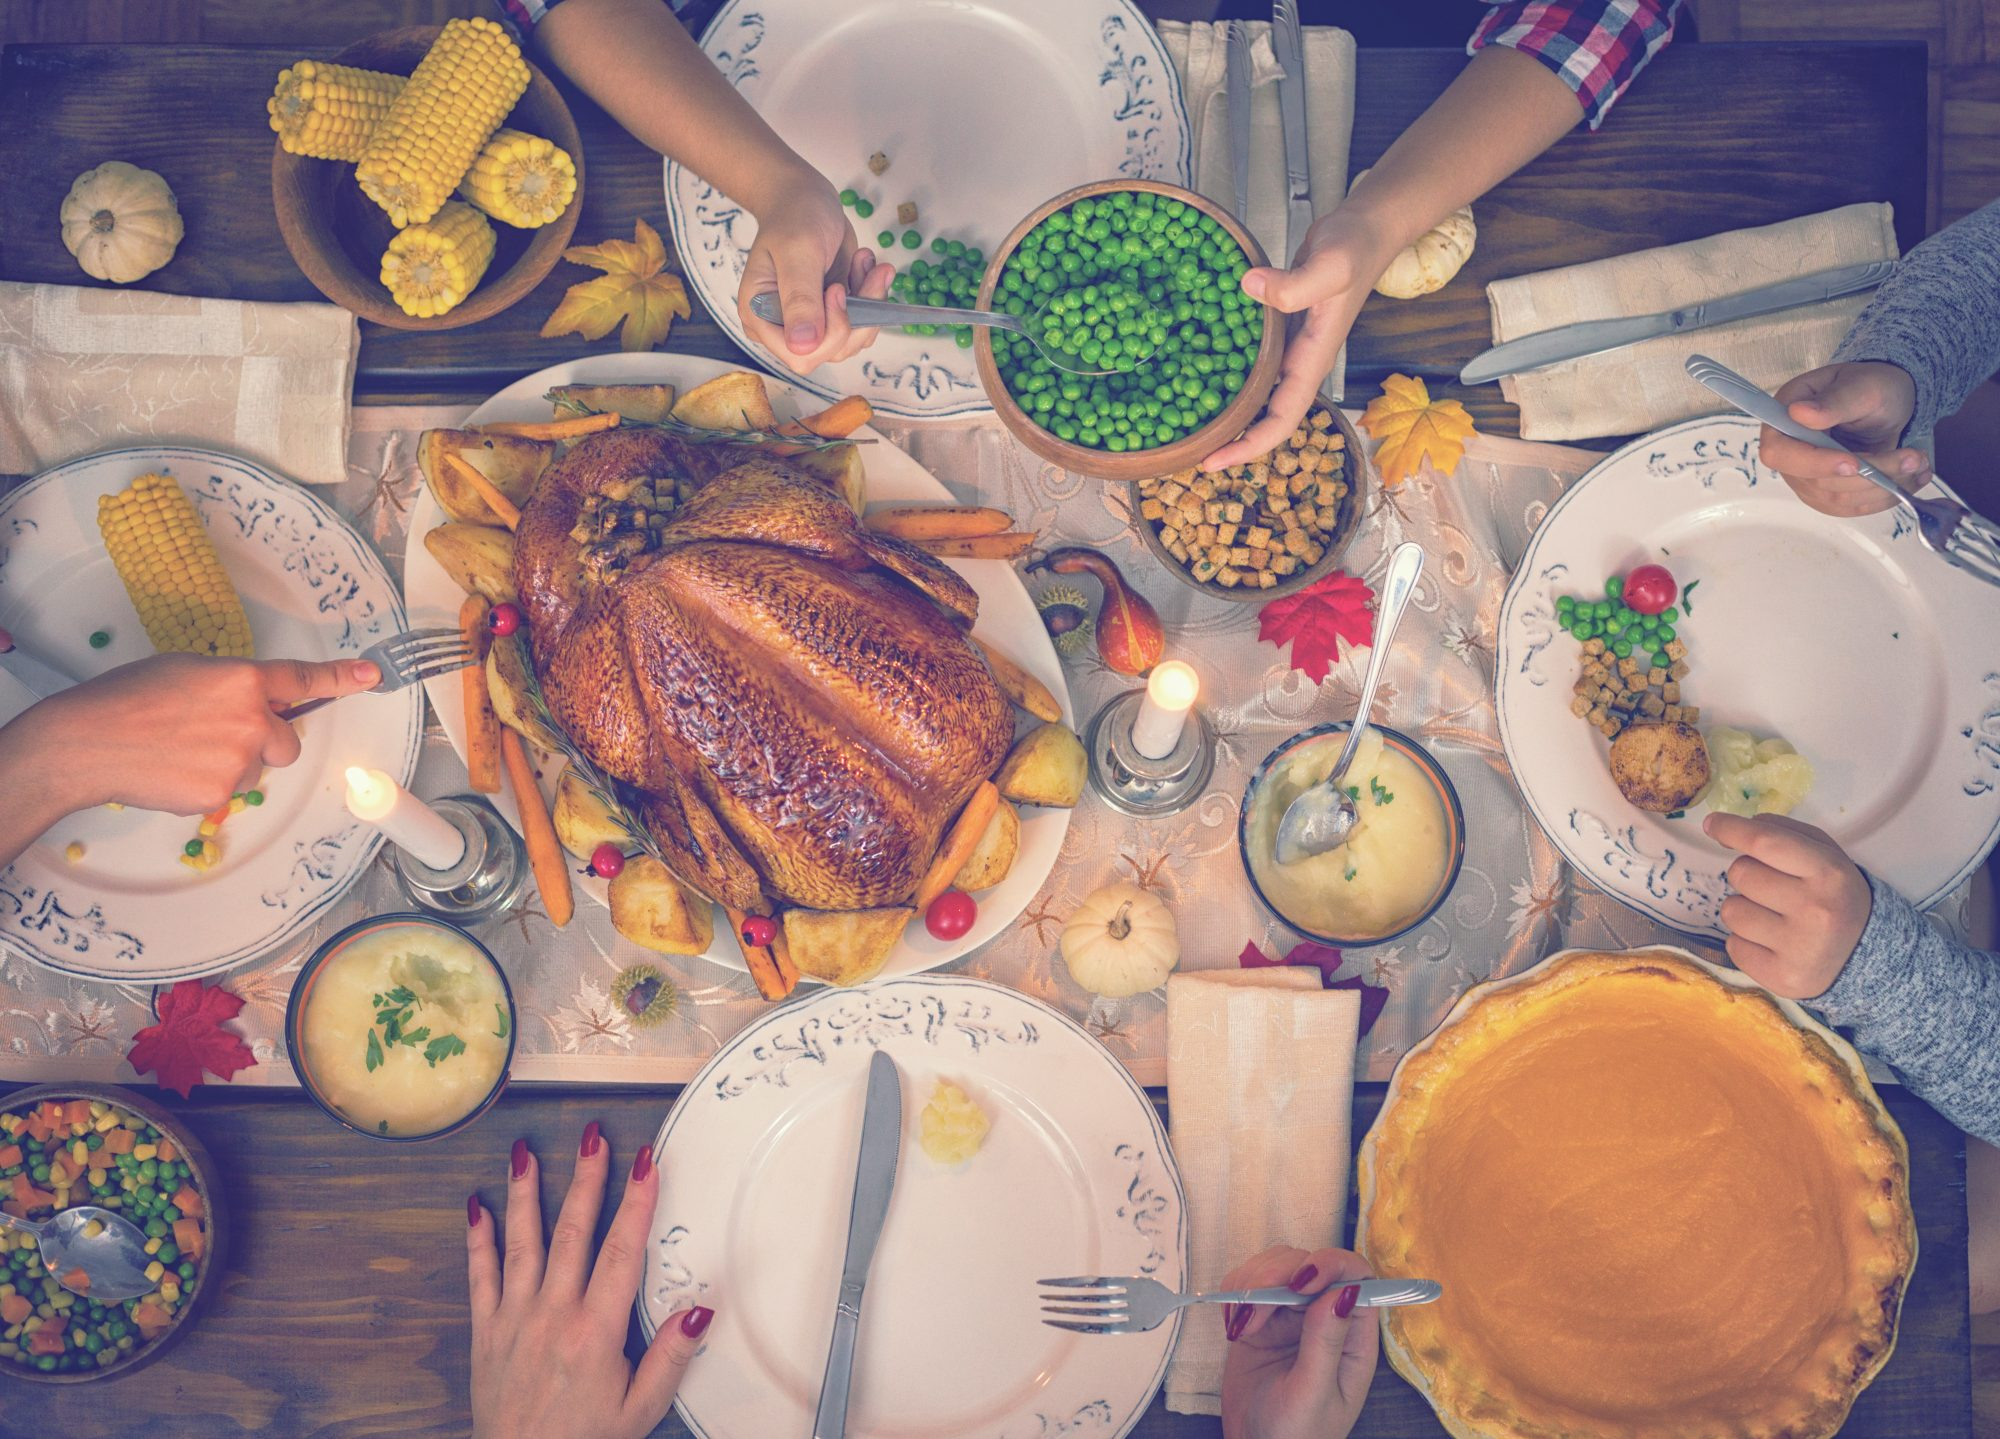 How to Survive Thanksgiving If You're Vegan but Your Family Eats Meat